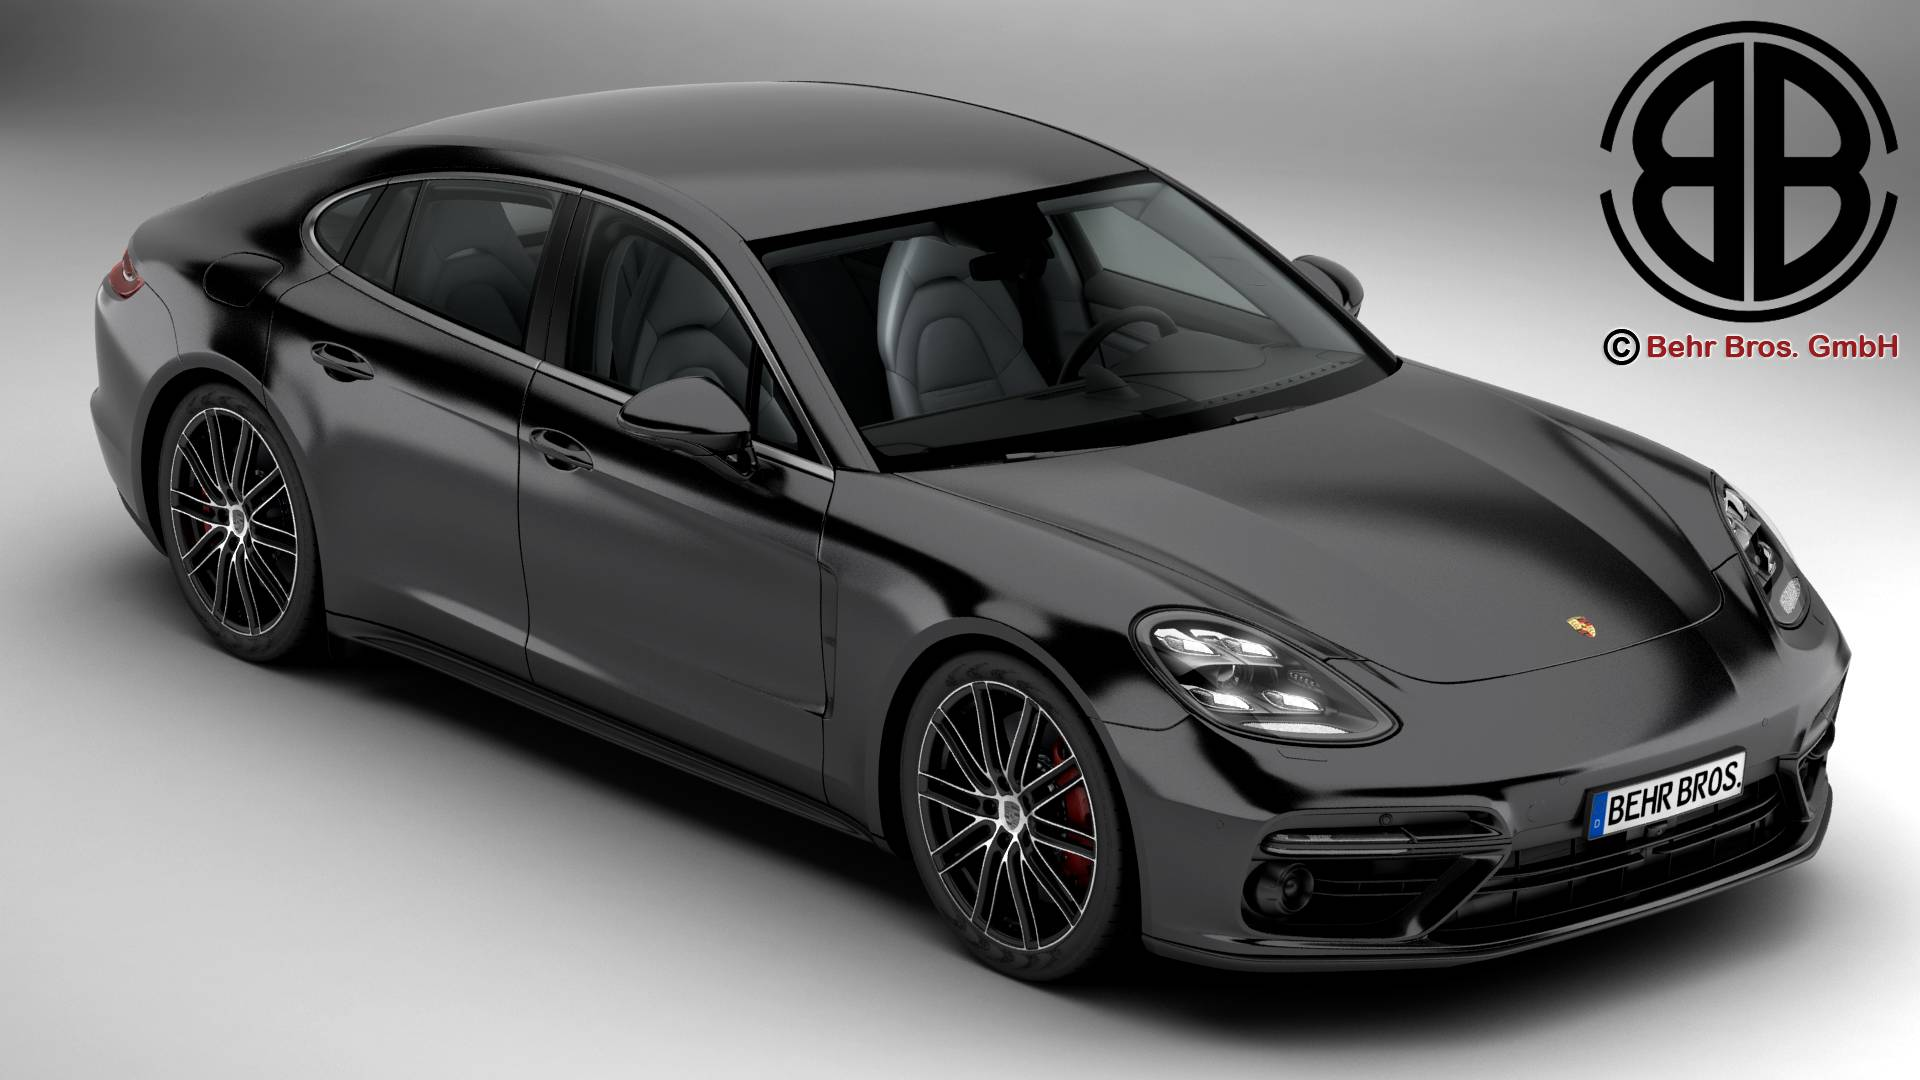 porsche panamera turbo 2017 3d model buy porsche panamera turbo 2017 3d model flatpyramid. Black Bedroom Furniture Sets. Home Design Ideas